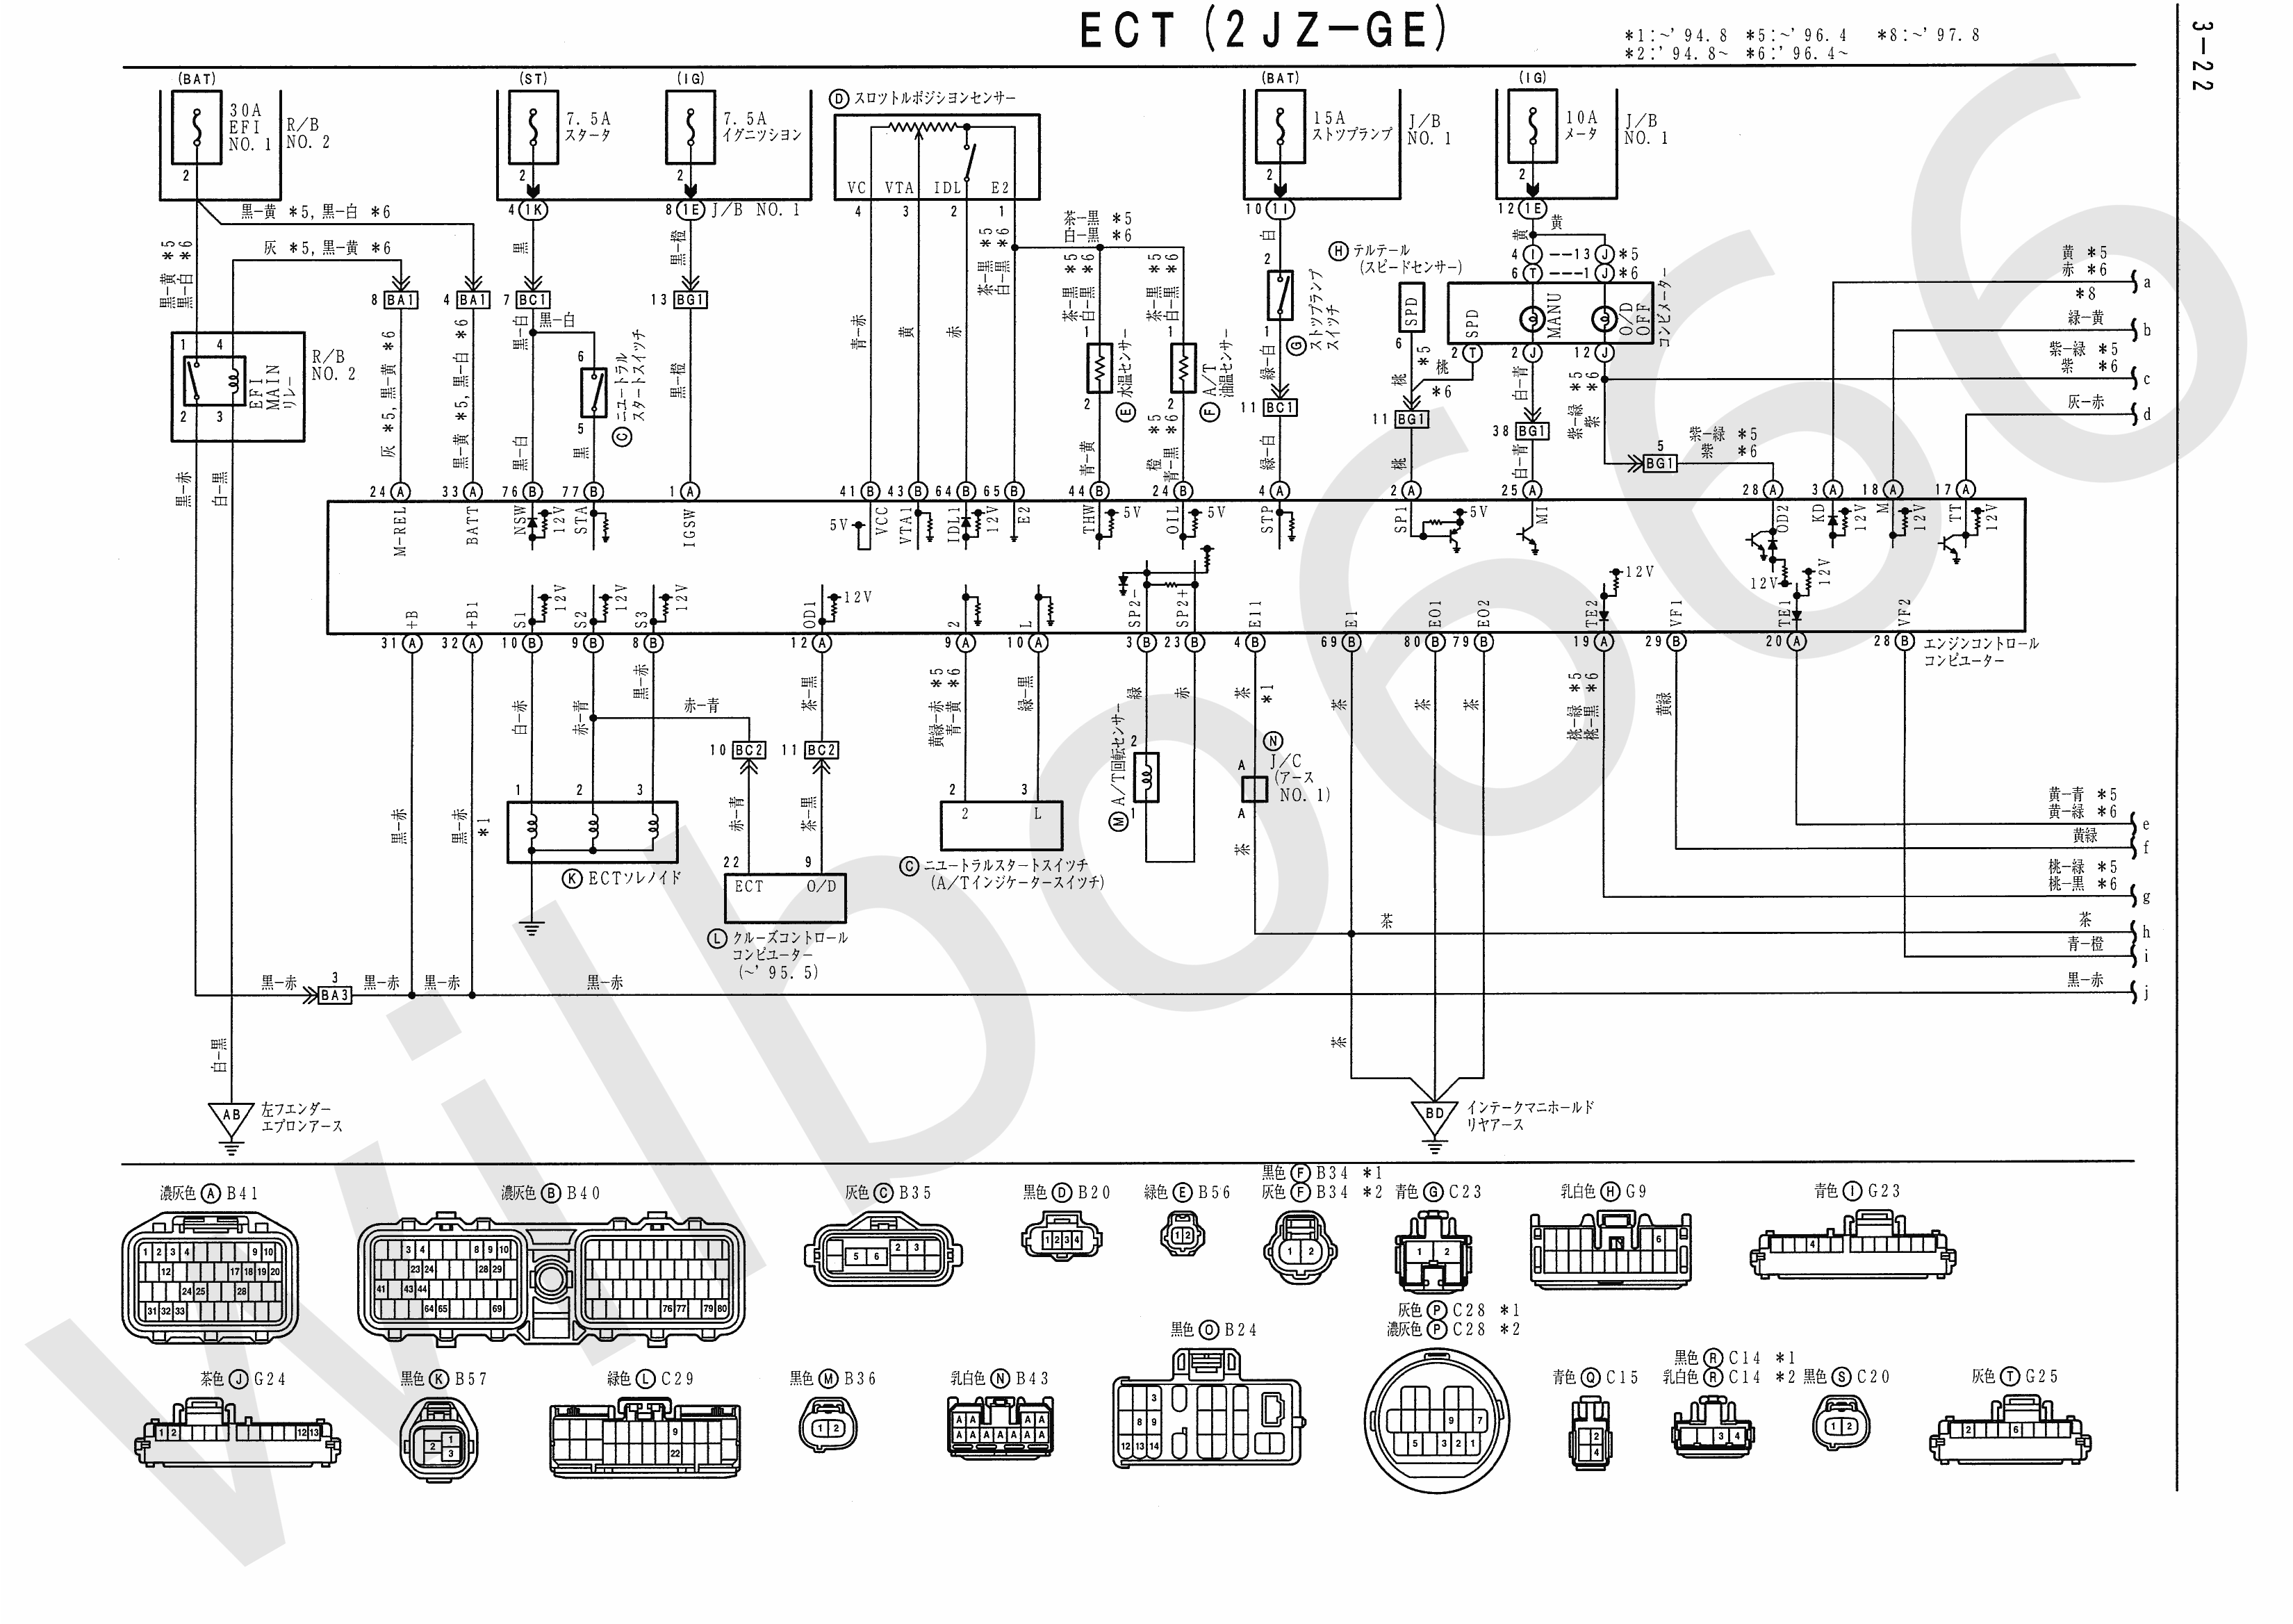 JZA80 Electrical Wiring Diagram 6742505 3 22 wilbo666 2jz ge jza80 supra engine wiring Lexus SC300 Engine at soozxer.org